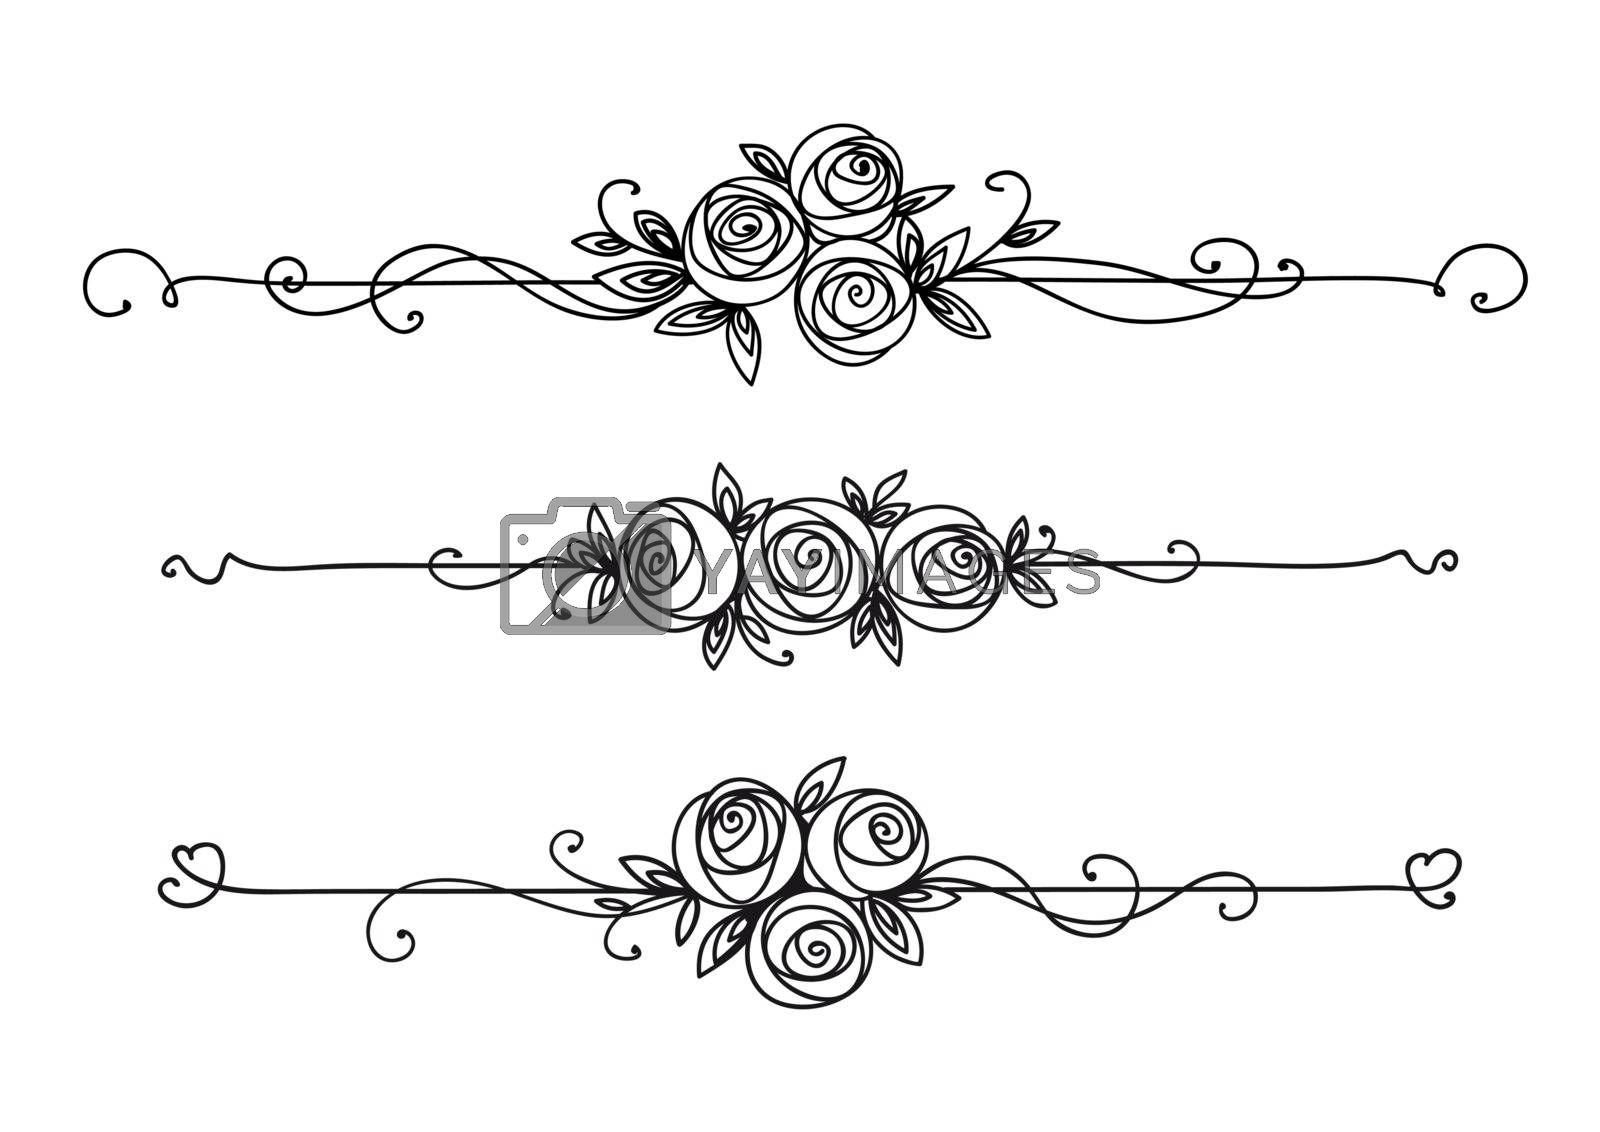 Floral elegant patterns black and white. Cover page design. Vintage elements for decor line art. Rose flower outline.